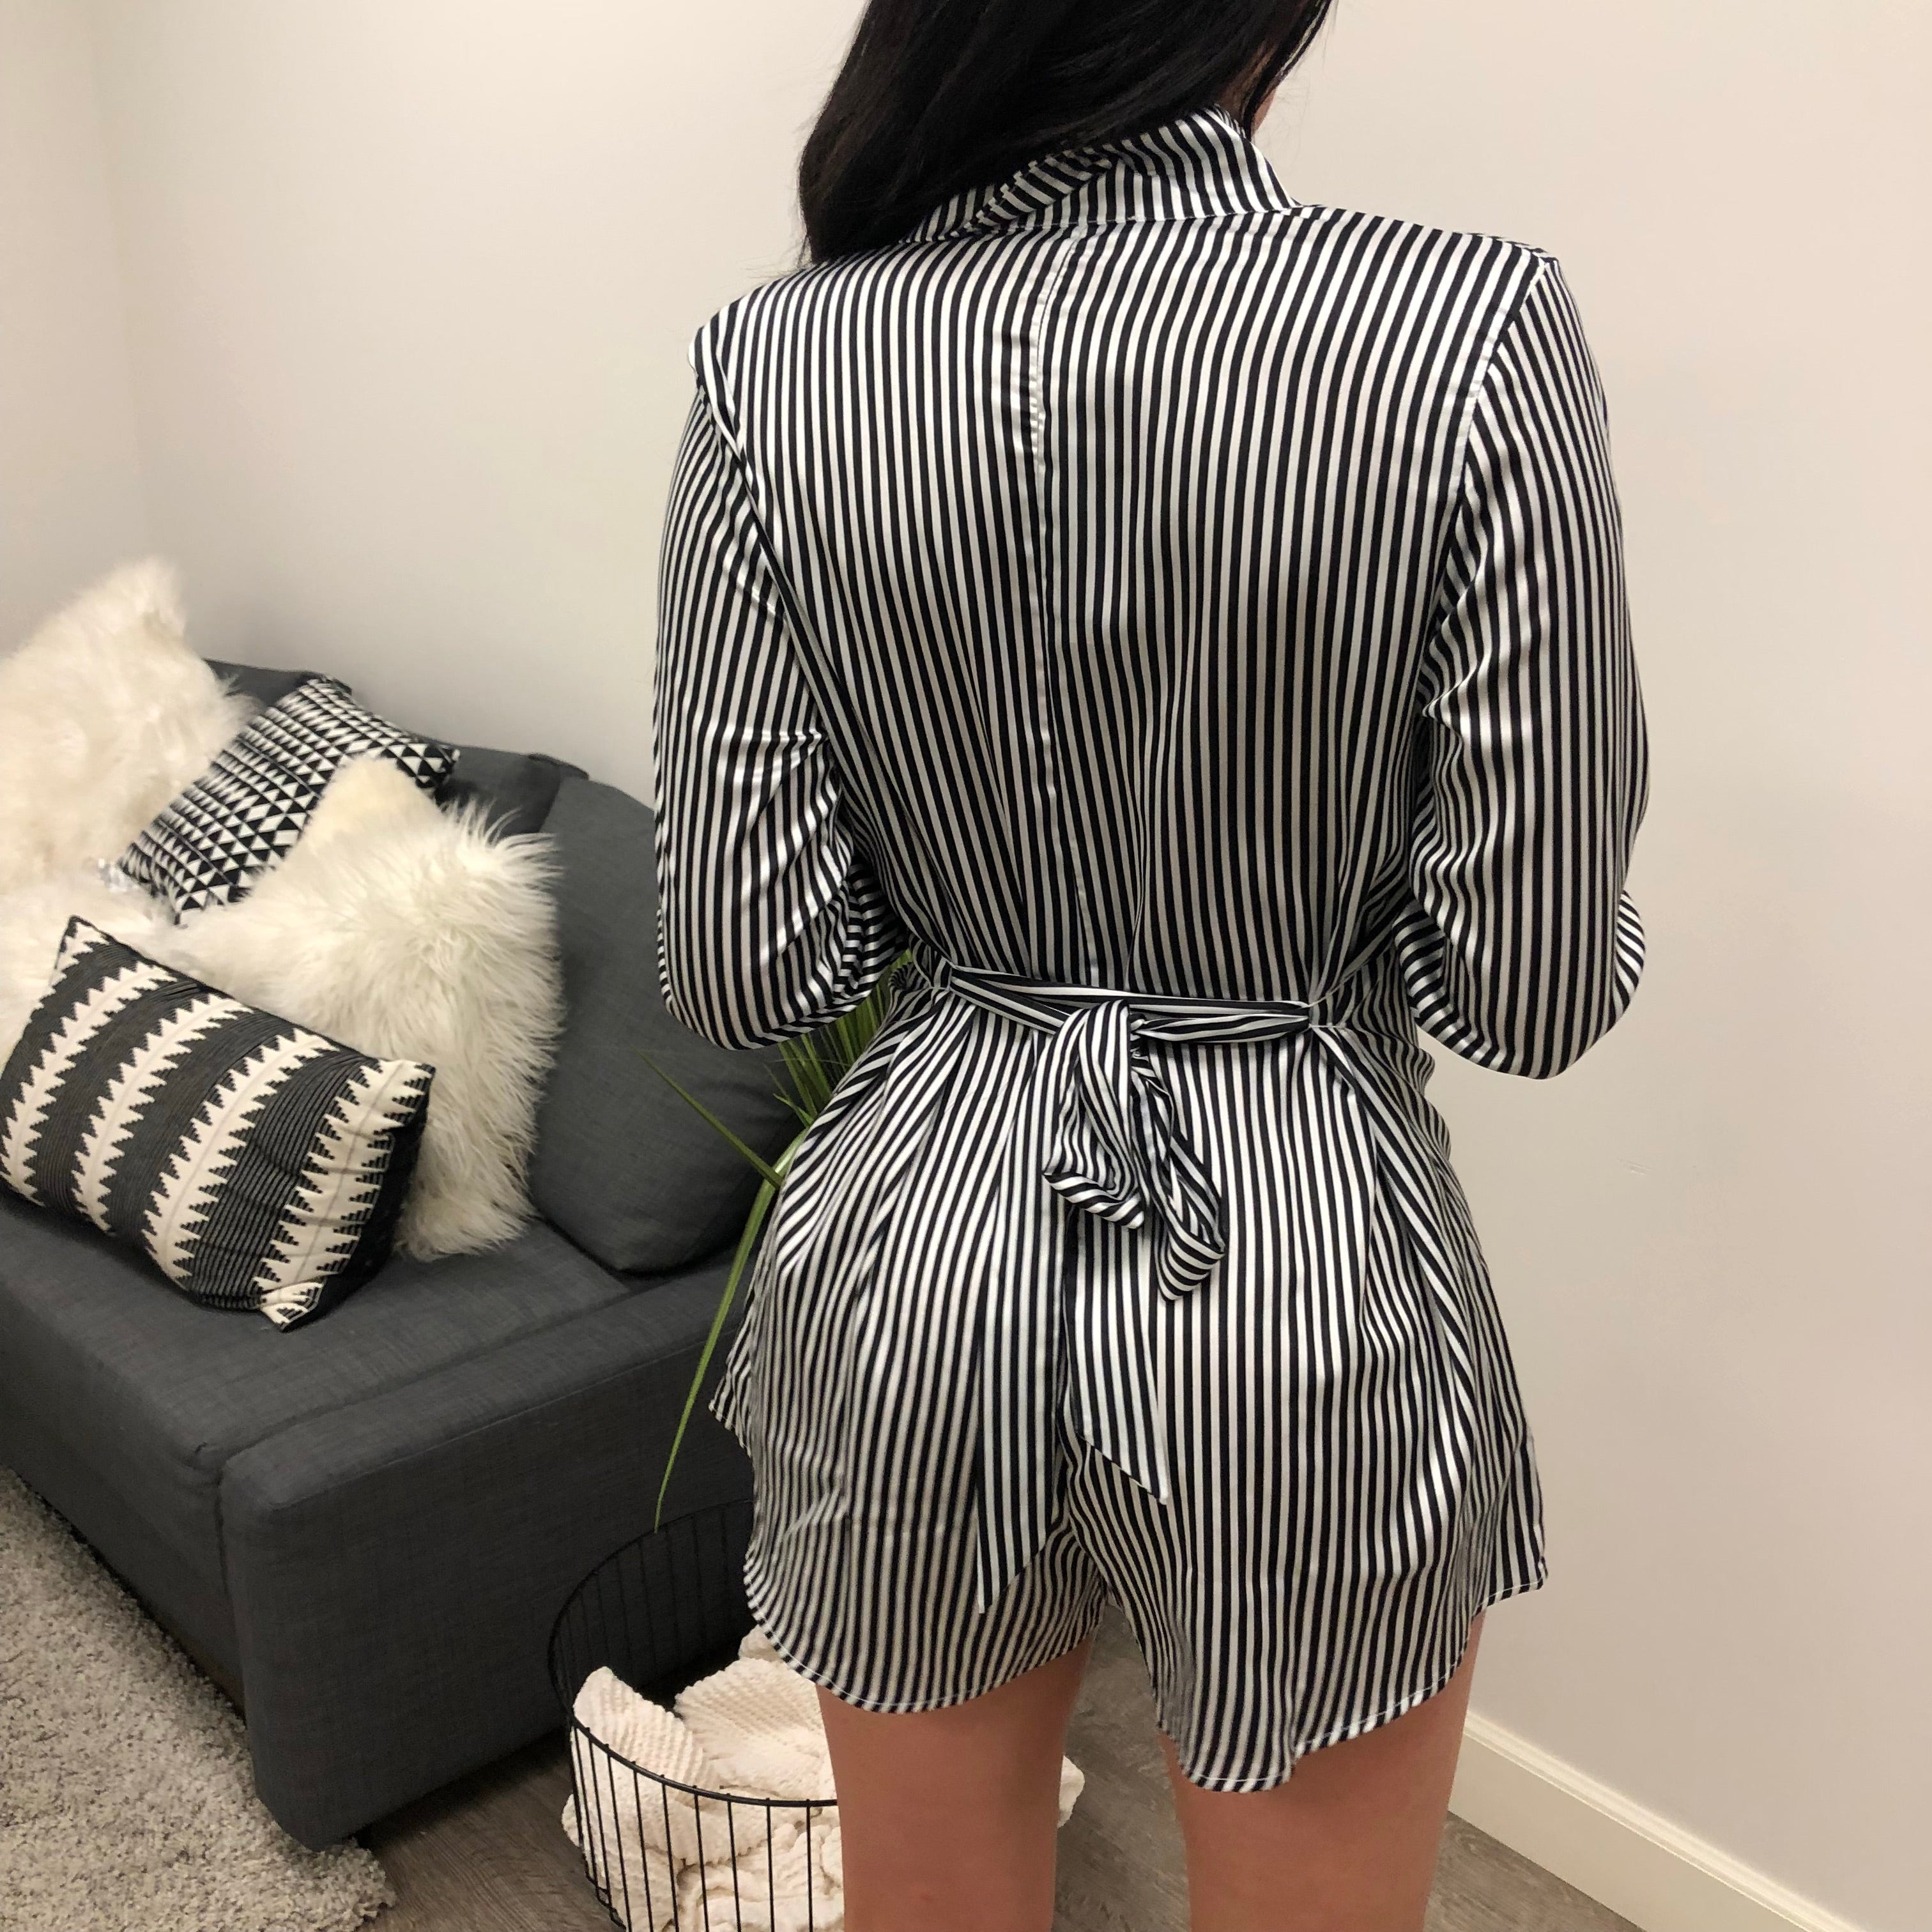 black and white vertical stripe romper. buttons in the chest area. collar long sleeve. collar neck. ties in the back.